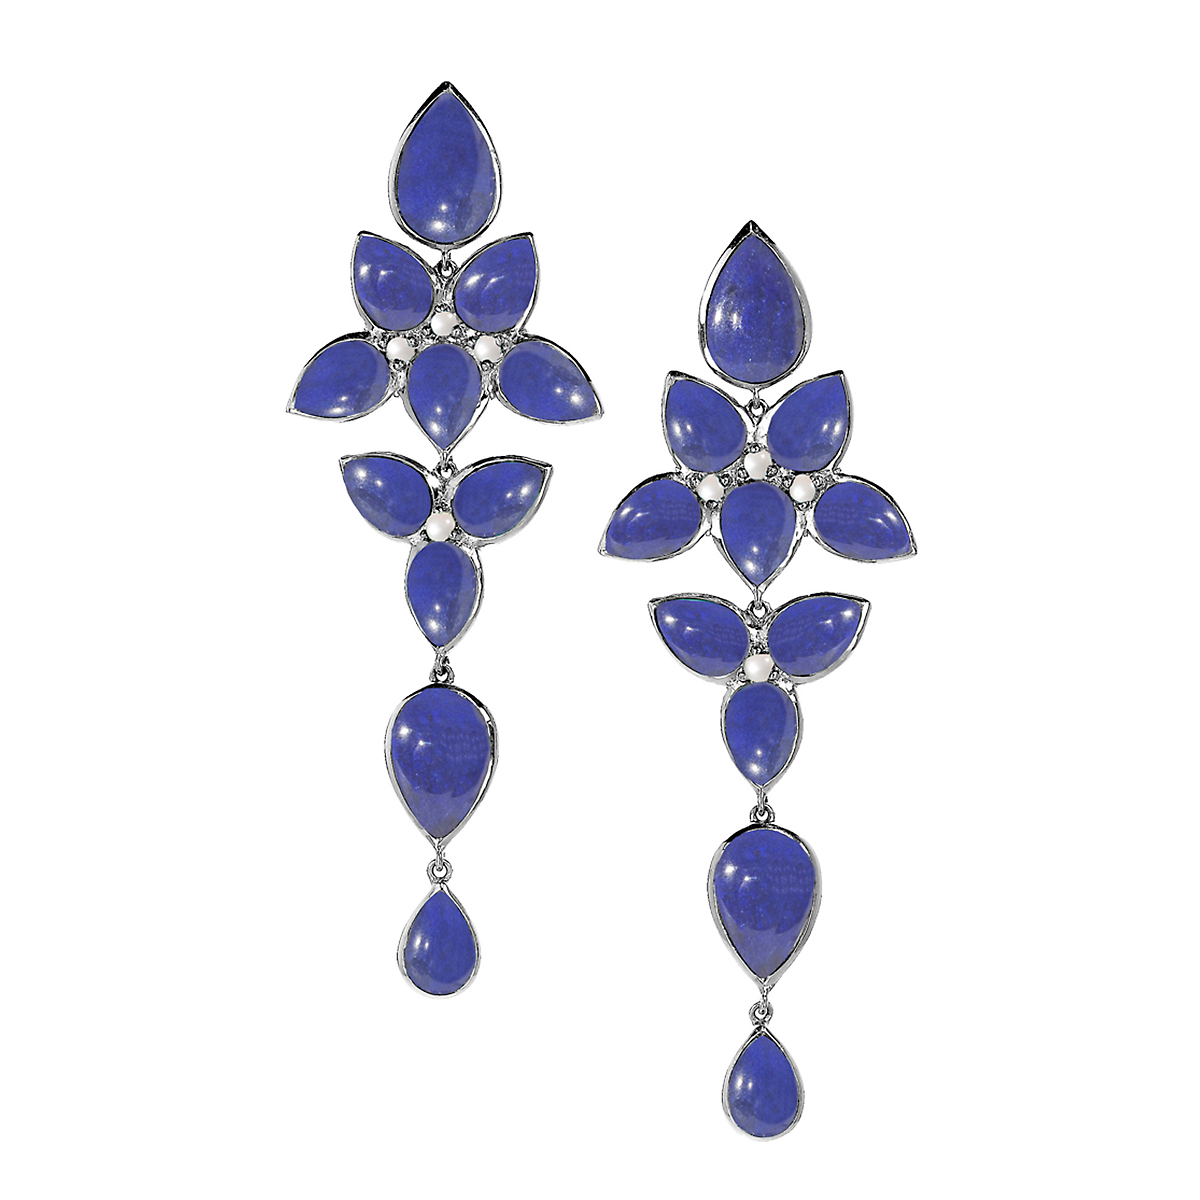 Elizabeth Showers Lapis Quartz & Moonstone Long Mariposa Earrings